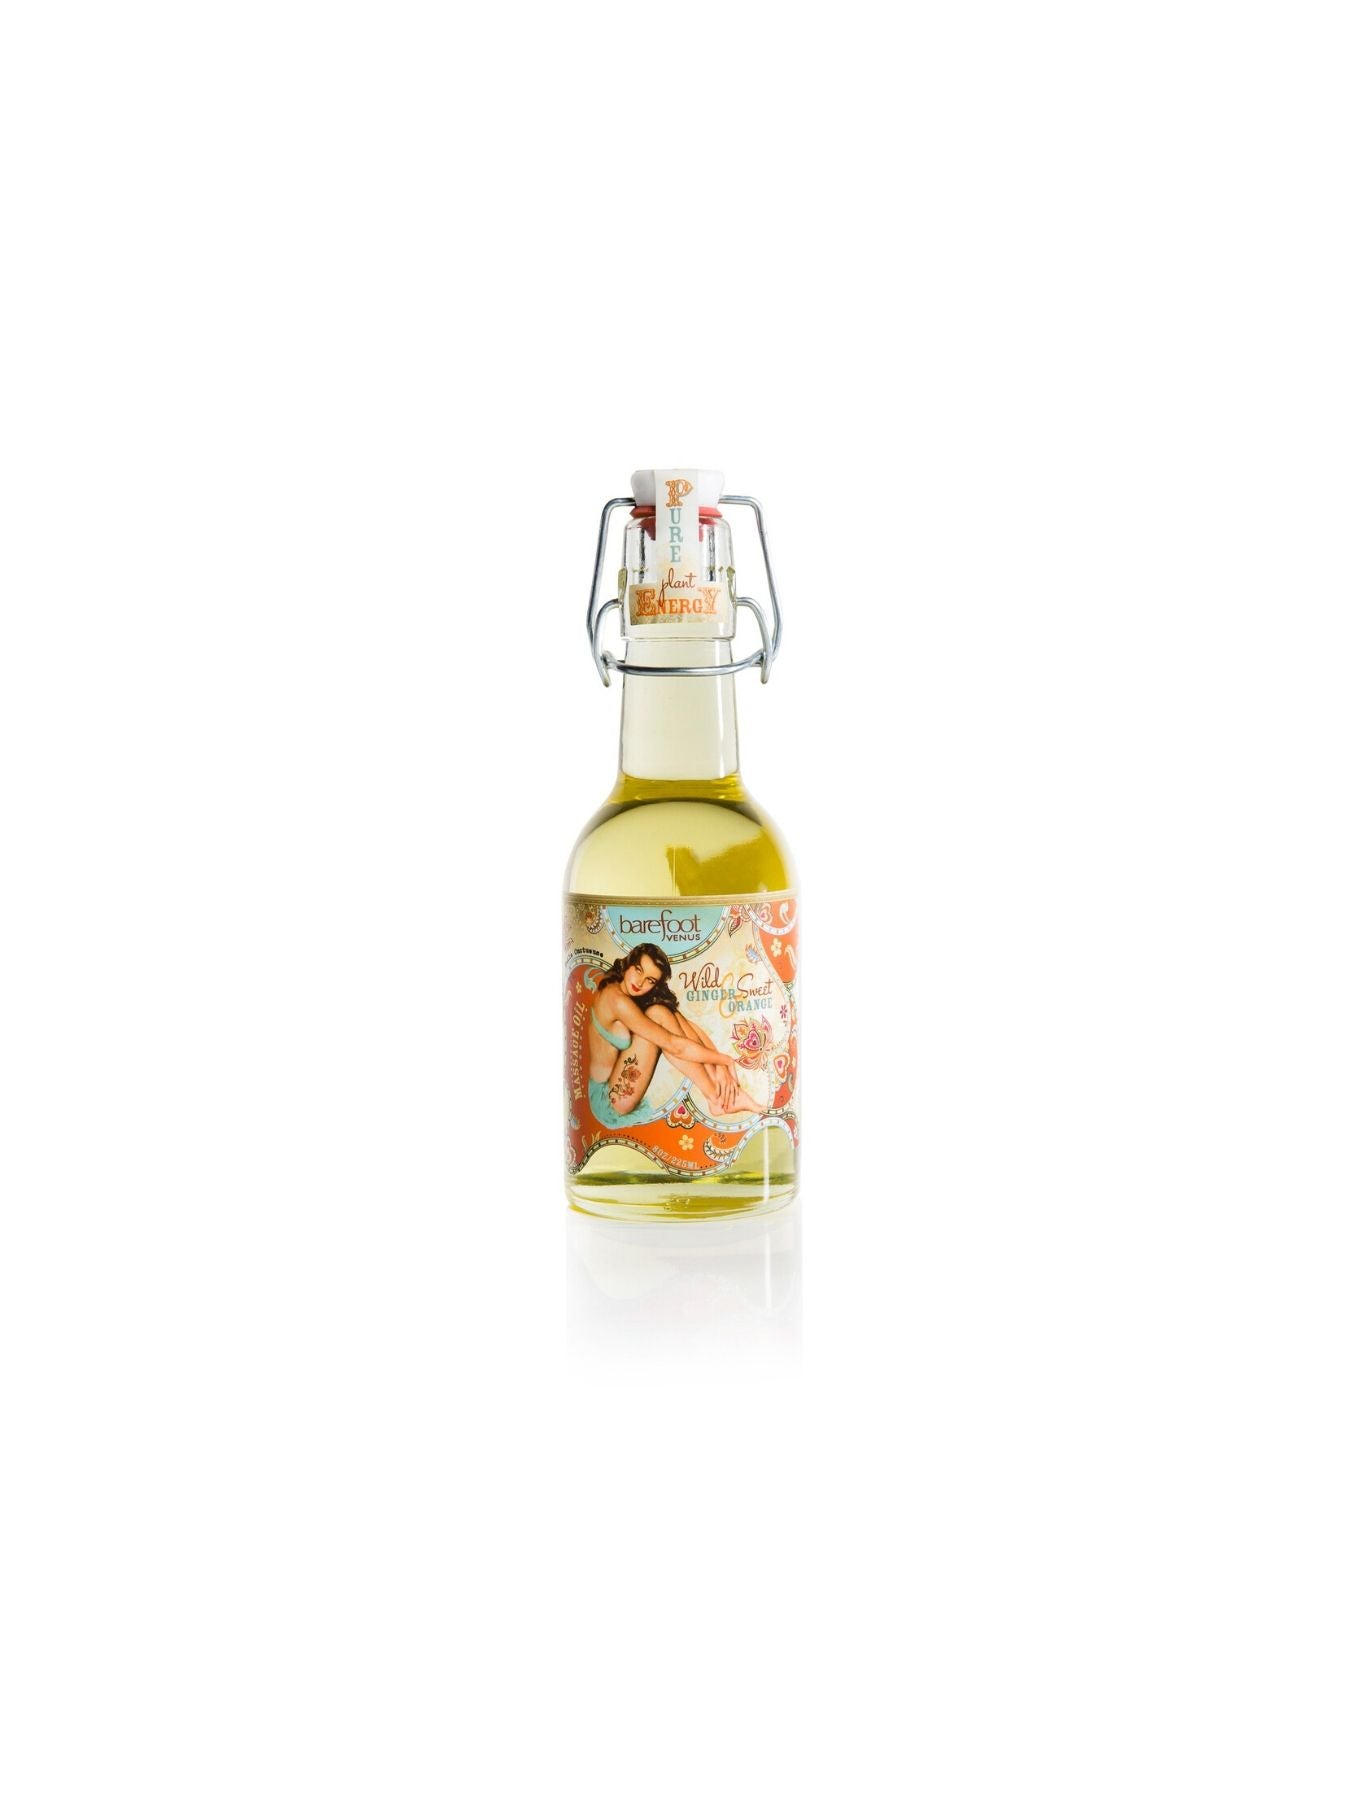 Barefoot Venus Wild Ginger and Orange Massage & Bath Oil